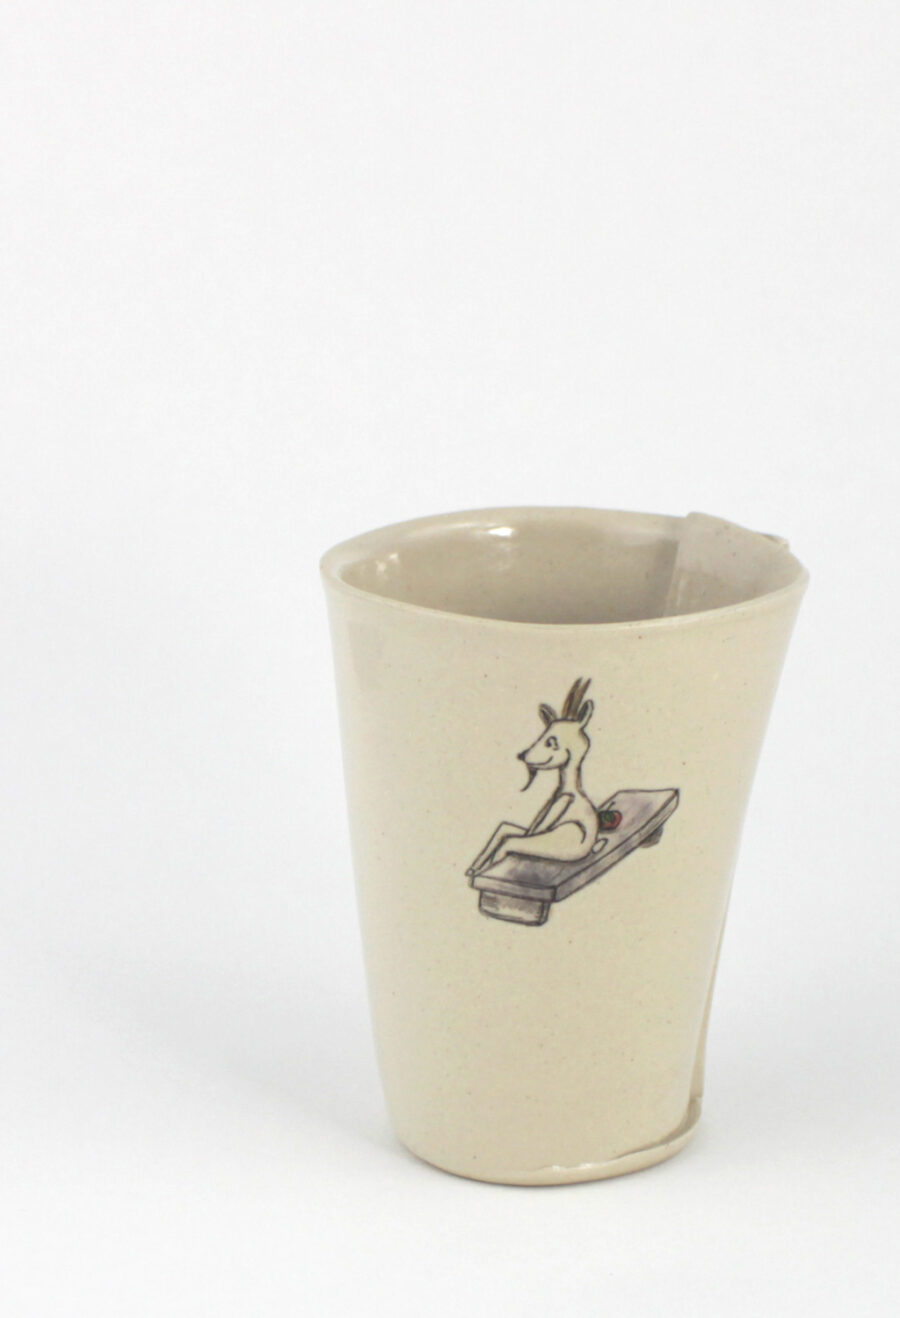 kaffeebecher-mit-ziege-am-viehtheater-my-deer-illustrated-ceramics